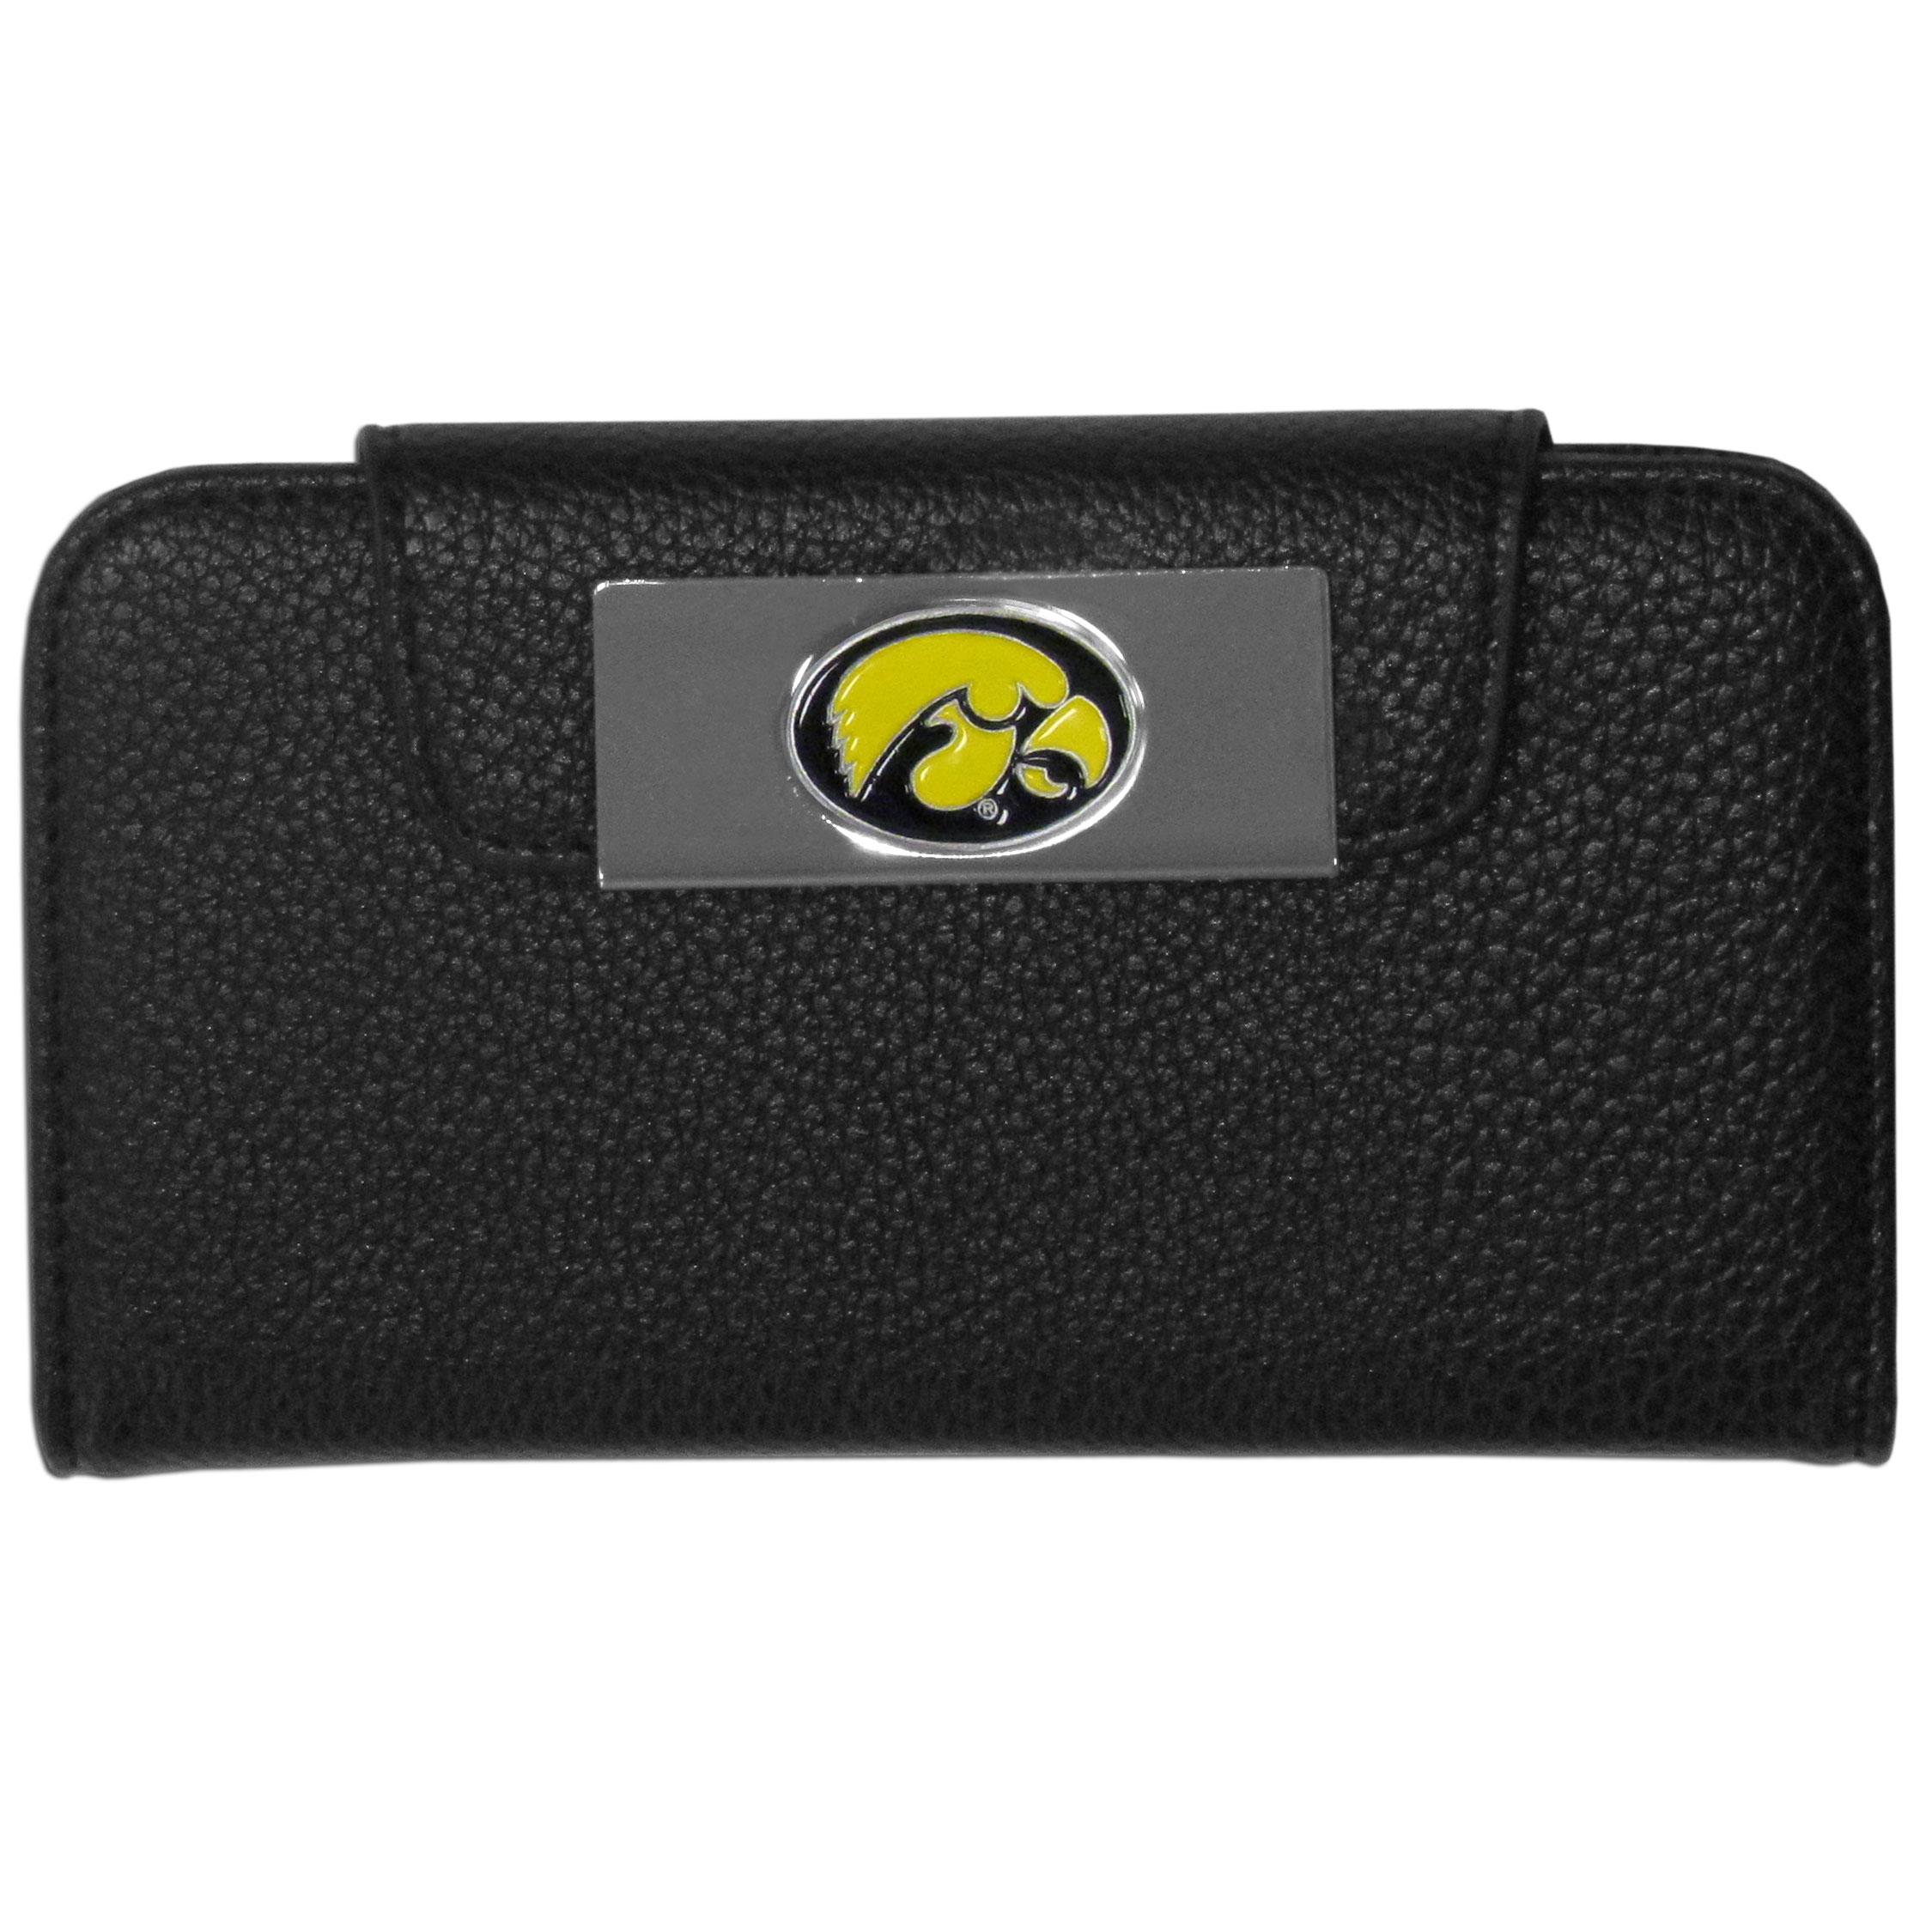 Iowa Hawkeyes Samsung Galaxy S4 Wallet Case - This new & wildly popular case is ideal for those who like to travel light! The stylish case has an inner hard shell that securely holds your phone while allowing complete access to the phone's functionality. The flip cover has slots for credit cards, business cards and identification. The magnetic flip cover has a metal Iowa Hawkeyes emblem on a high polish chrome backing. Fits the Samsung Galaxy S4